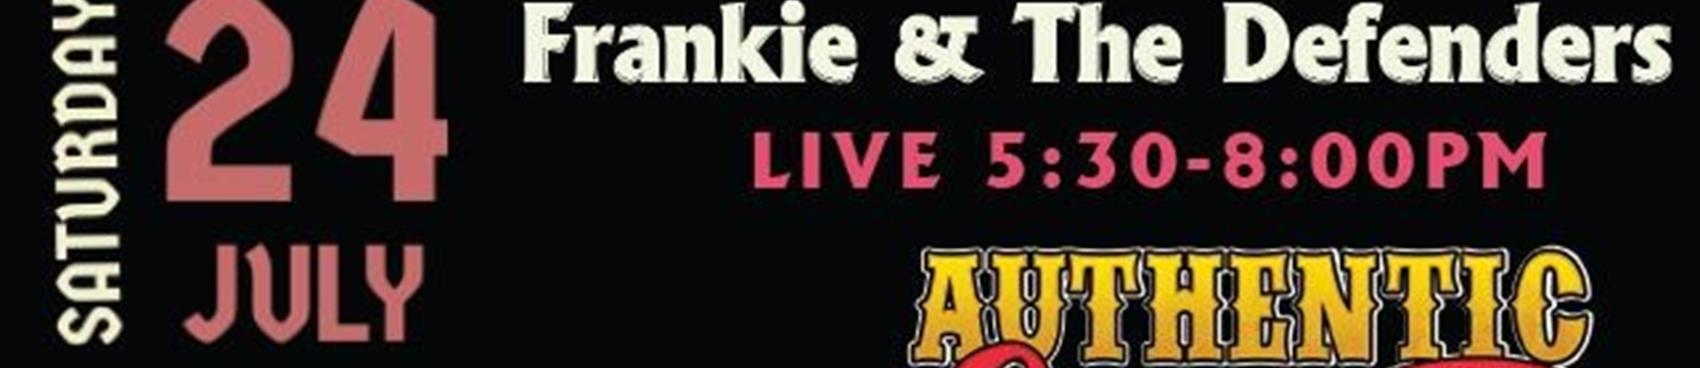 Food, Wine & Live Music by Frankie & The Defenders